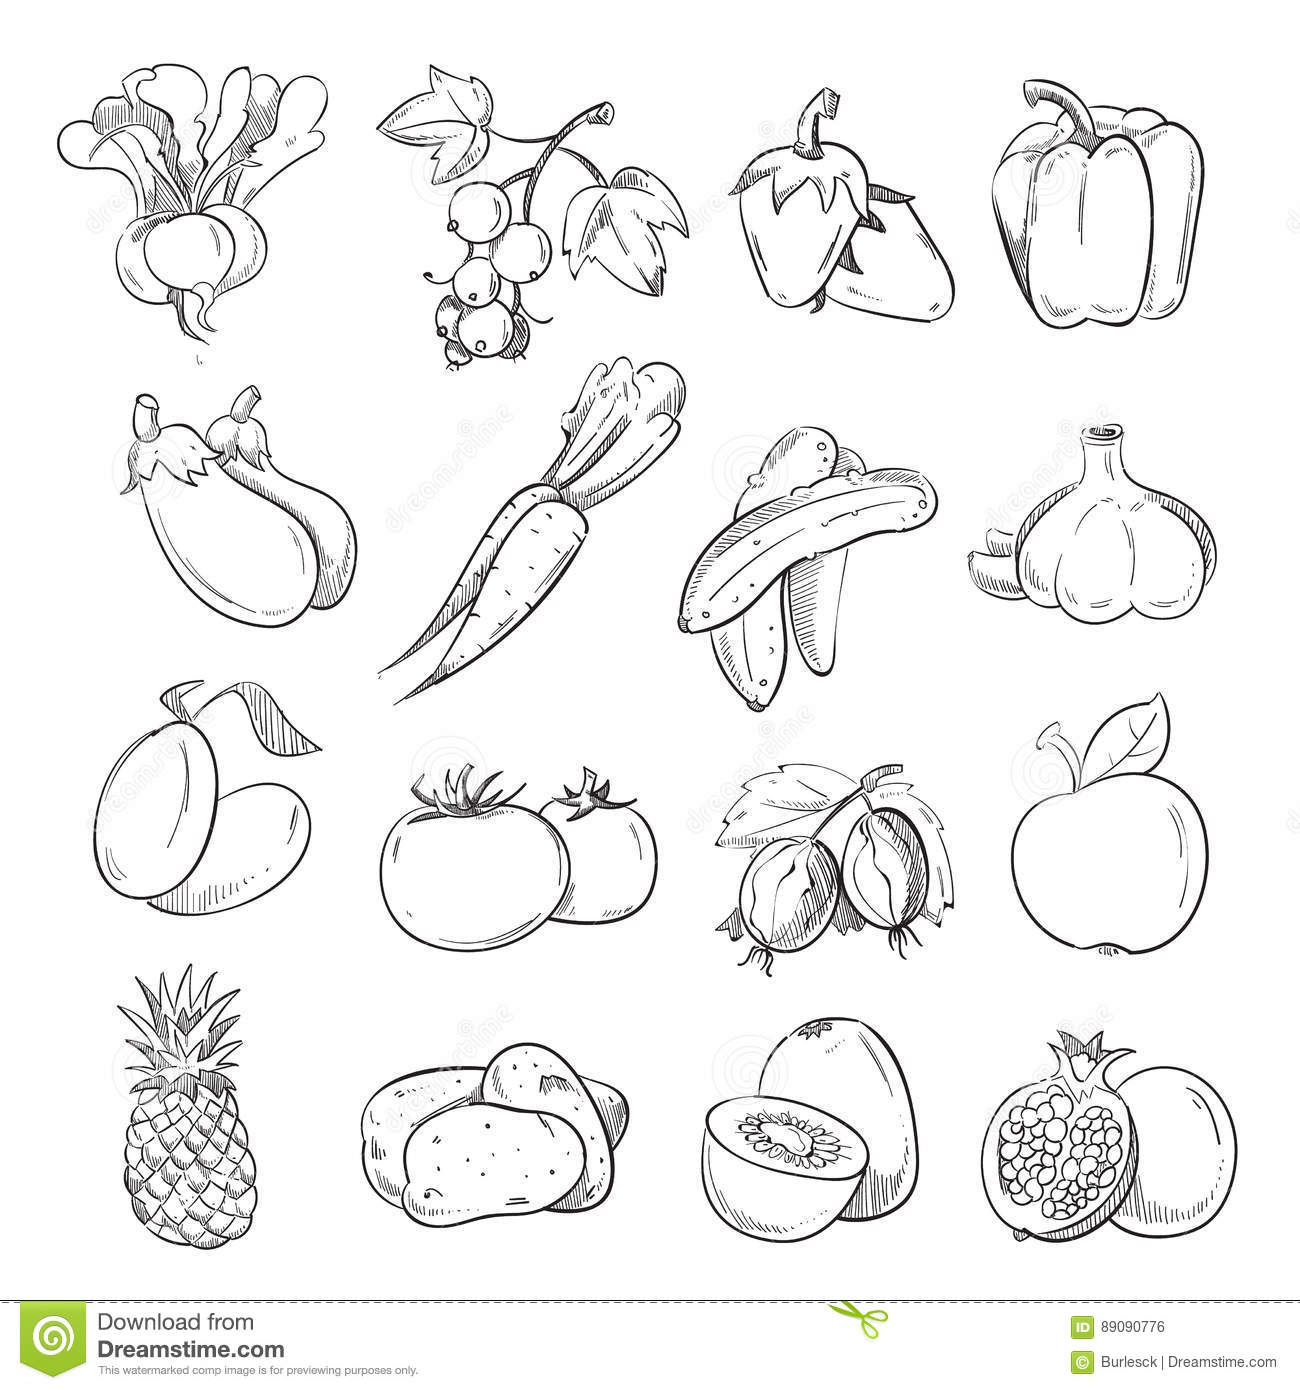 Snail Coloring Page 09 besides Cat Clipart 18211 additionally Desenho De Animais Da Fazenda likewise Corn Stalk Coloring Page together with Desert Animals Coloring Pages Desert Coloring Pages In Desert Animals Coloring Page Animals. on farm coloring pages